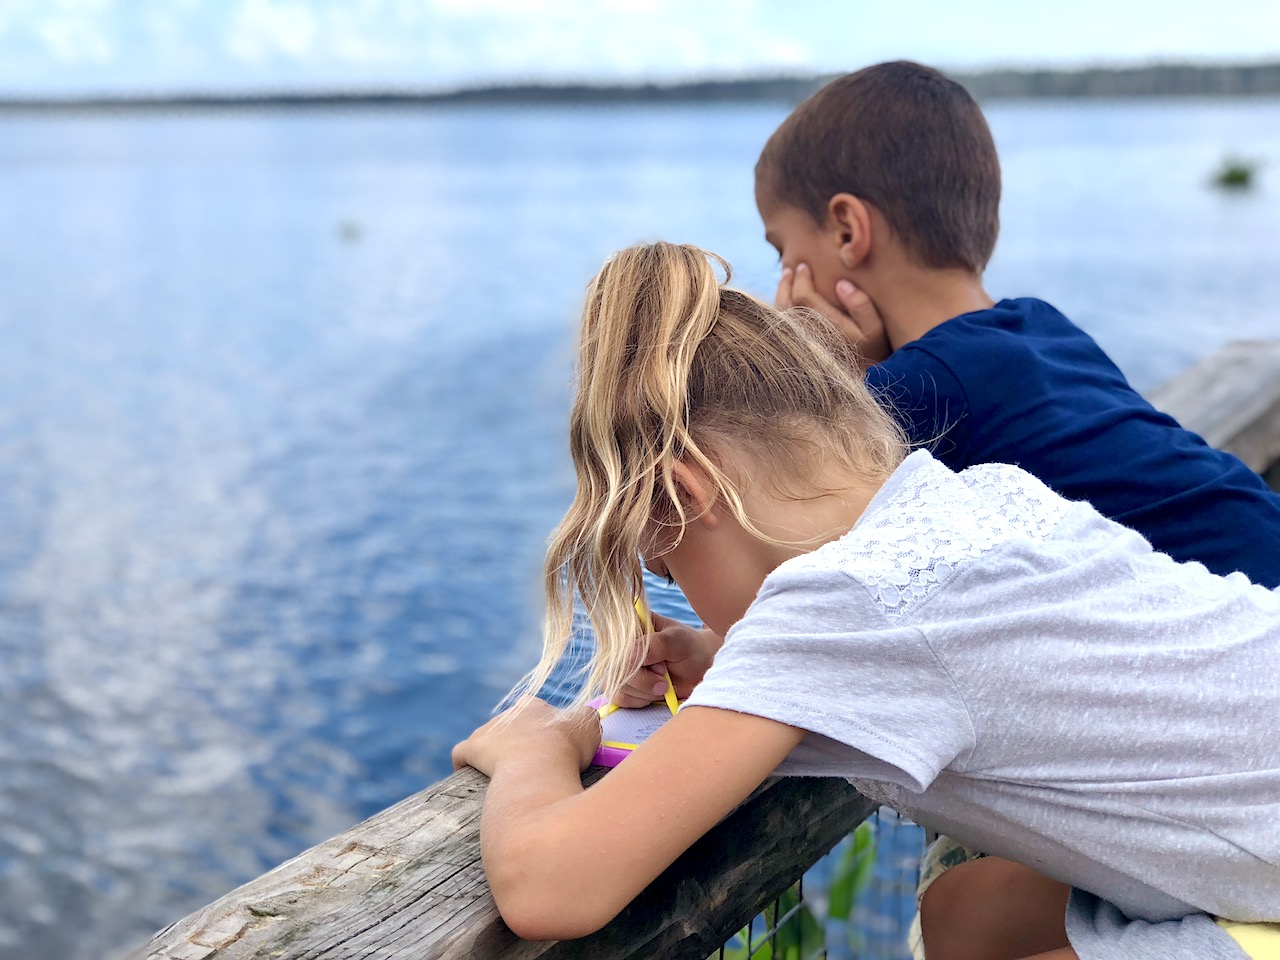 Kids in Gainesville - 2-day itinerary for families in Gainesville, FL #gainesville #florida #tourofflorida #alachuacounty #gainesvilleFL #universityofflorida #UF #gogators #Gainesvillewithkids #gainesvilleitinerary